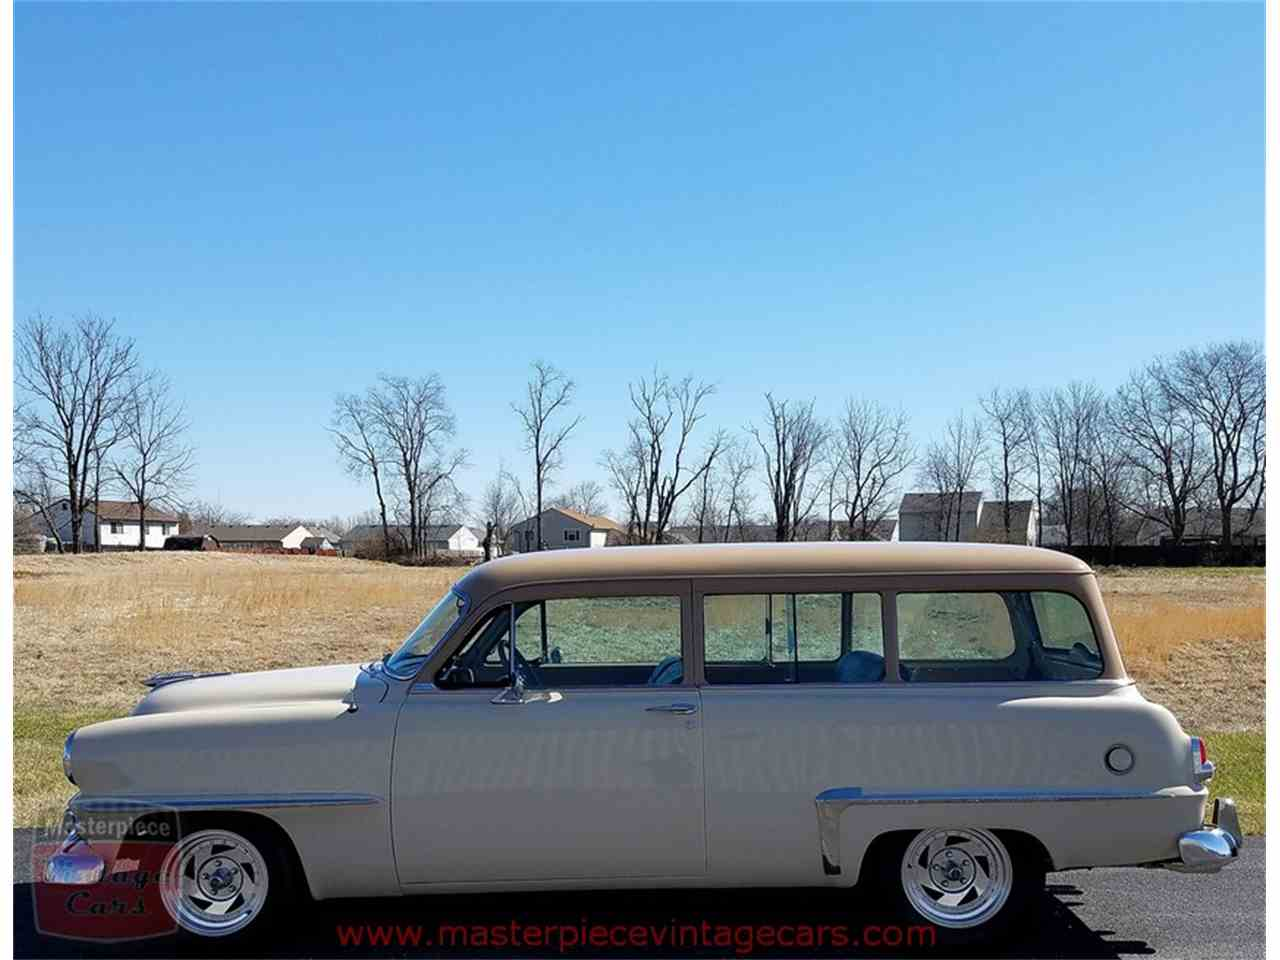 Large Picture of Classic '54 Plymouth Plaza Suburban - $34,900.00 Offered by Masterpiece Vintage Cars - KV49